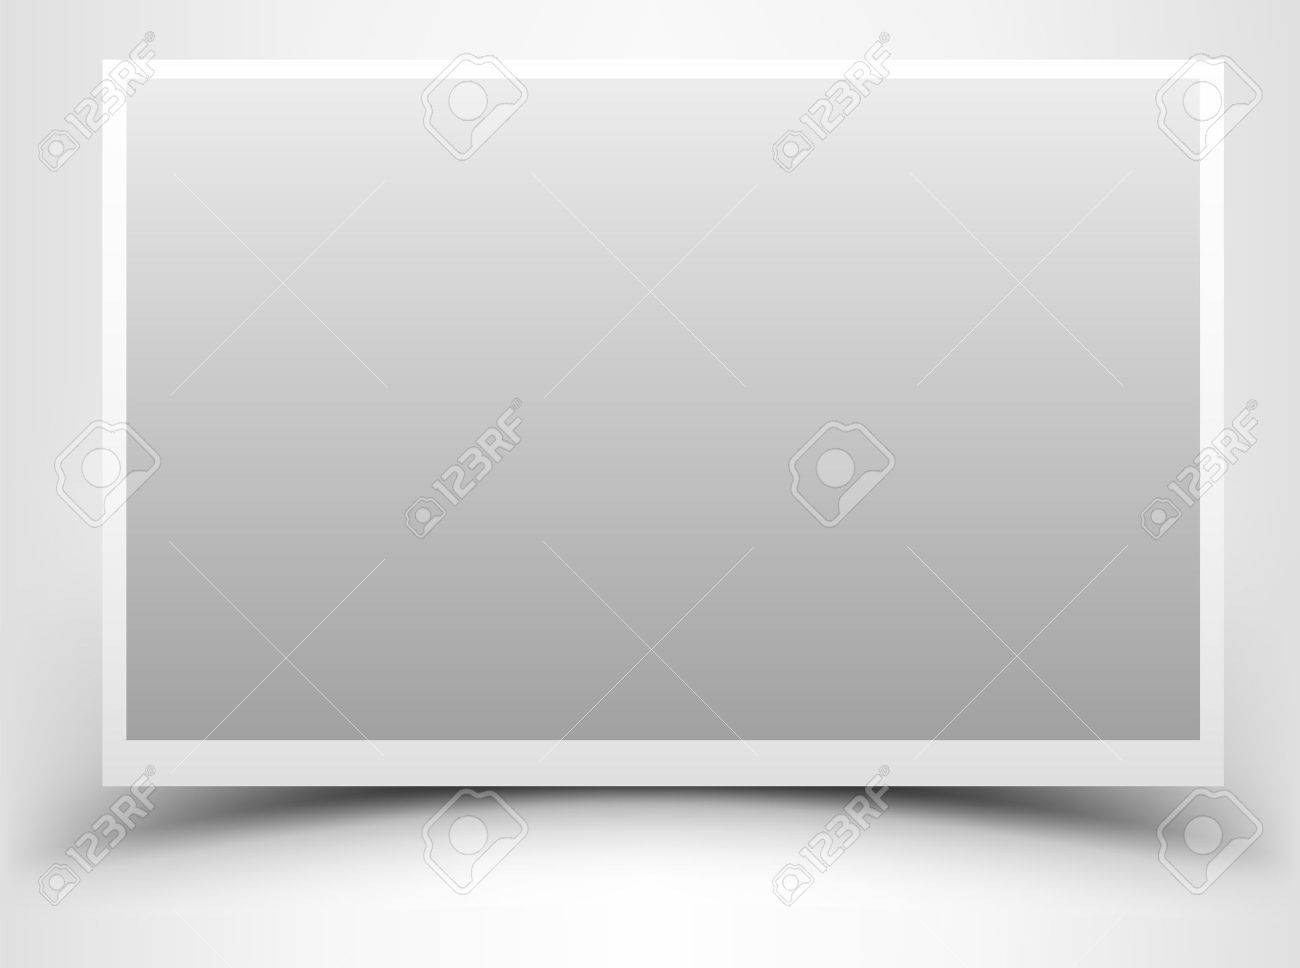 Empty Gray Photo Frame With Shadow Royalty Free Cliparts, Vectors ...